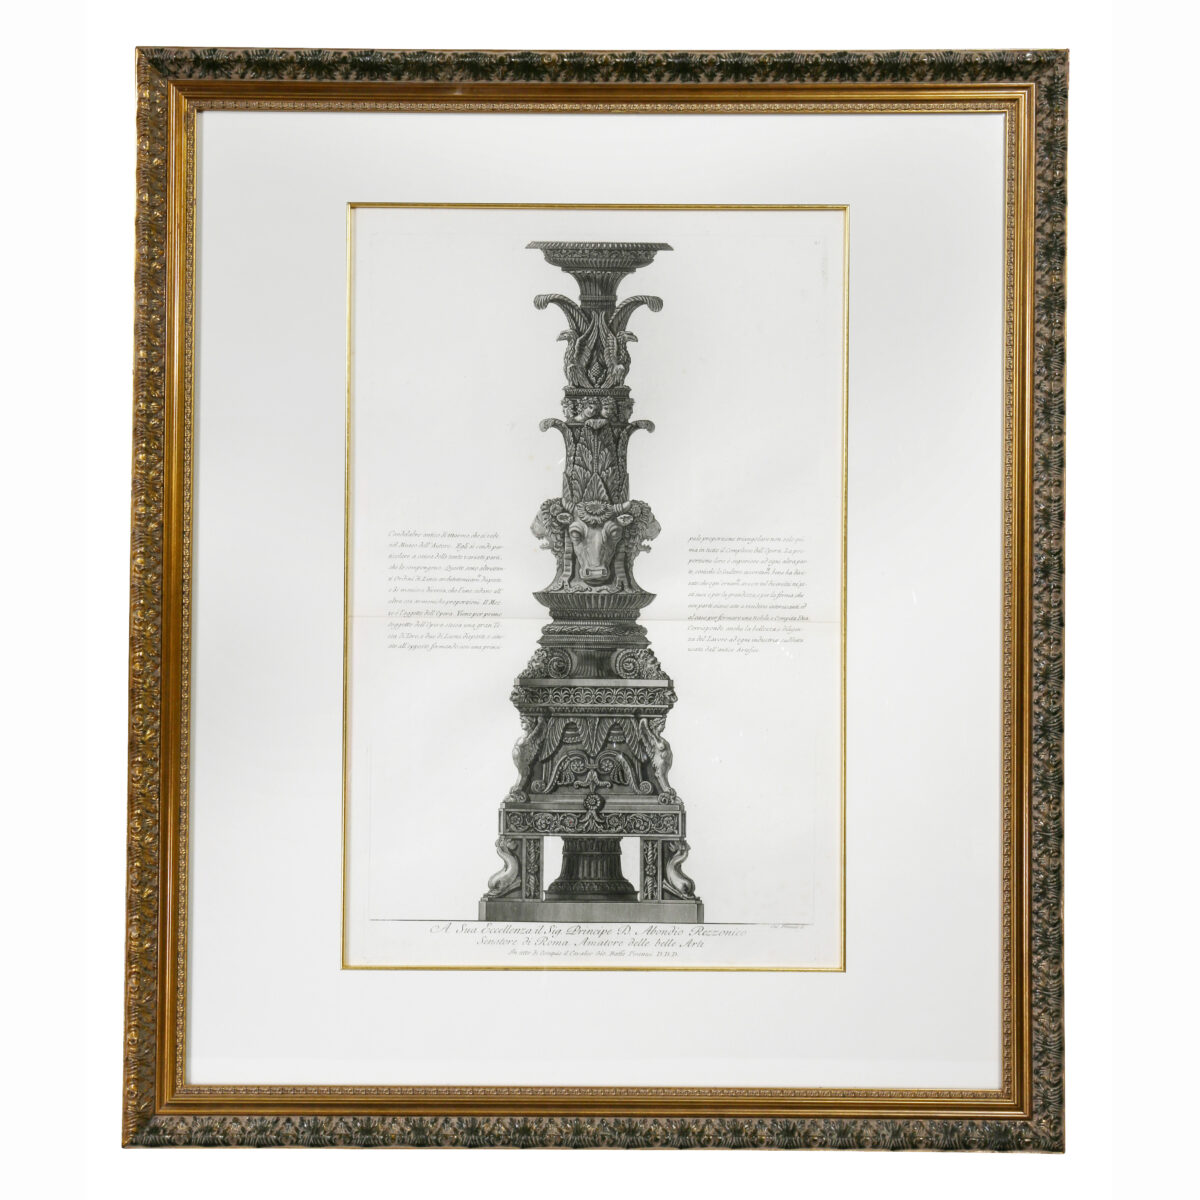 Framed Engraving of a Candelabrum by Francisco Piranesi